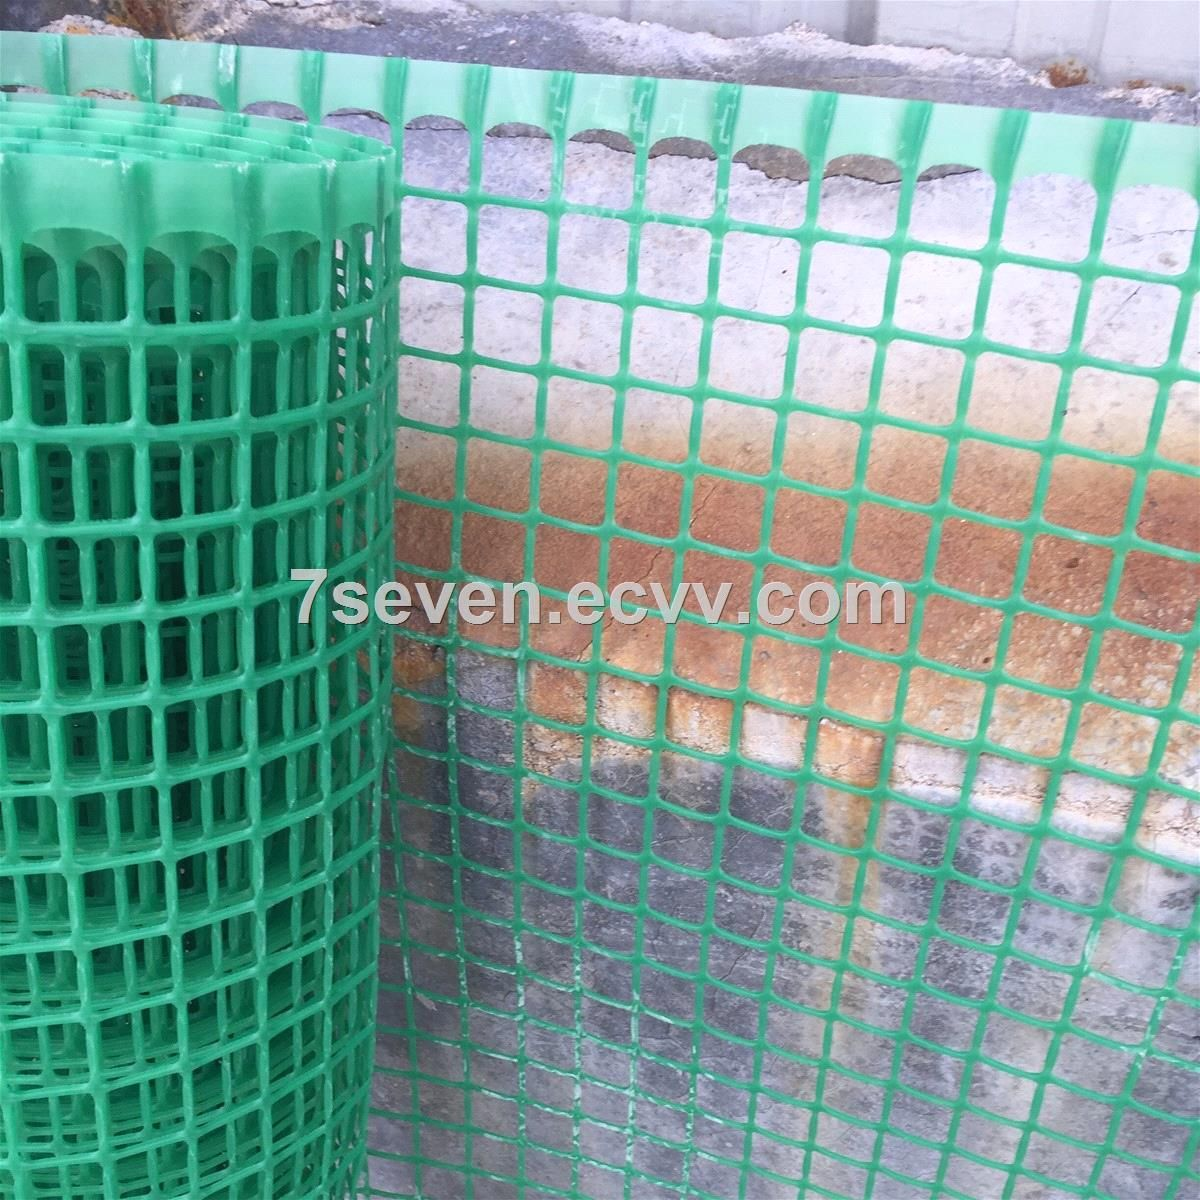 High Quality Plastic Rigid Mesh Netting Garden Square Mesh Plastic Netting Fence Ss198510 China Plastic Rigid Square Mesh N Garden Mesh Mesh Netting Fence